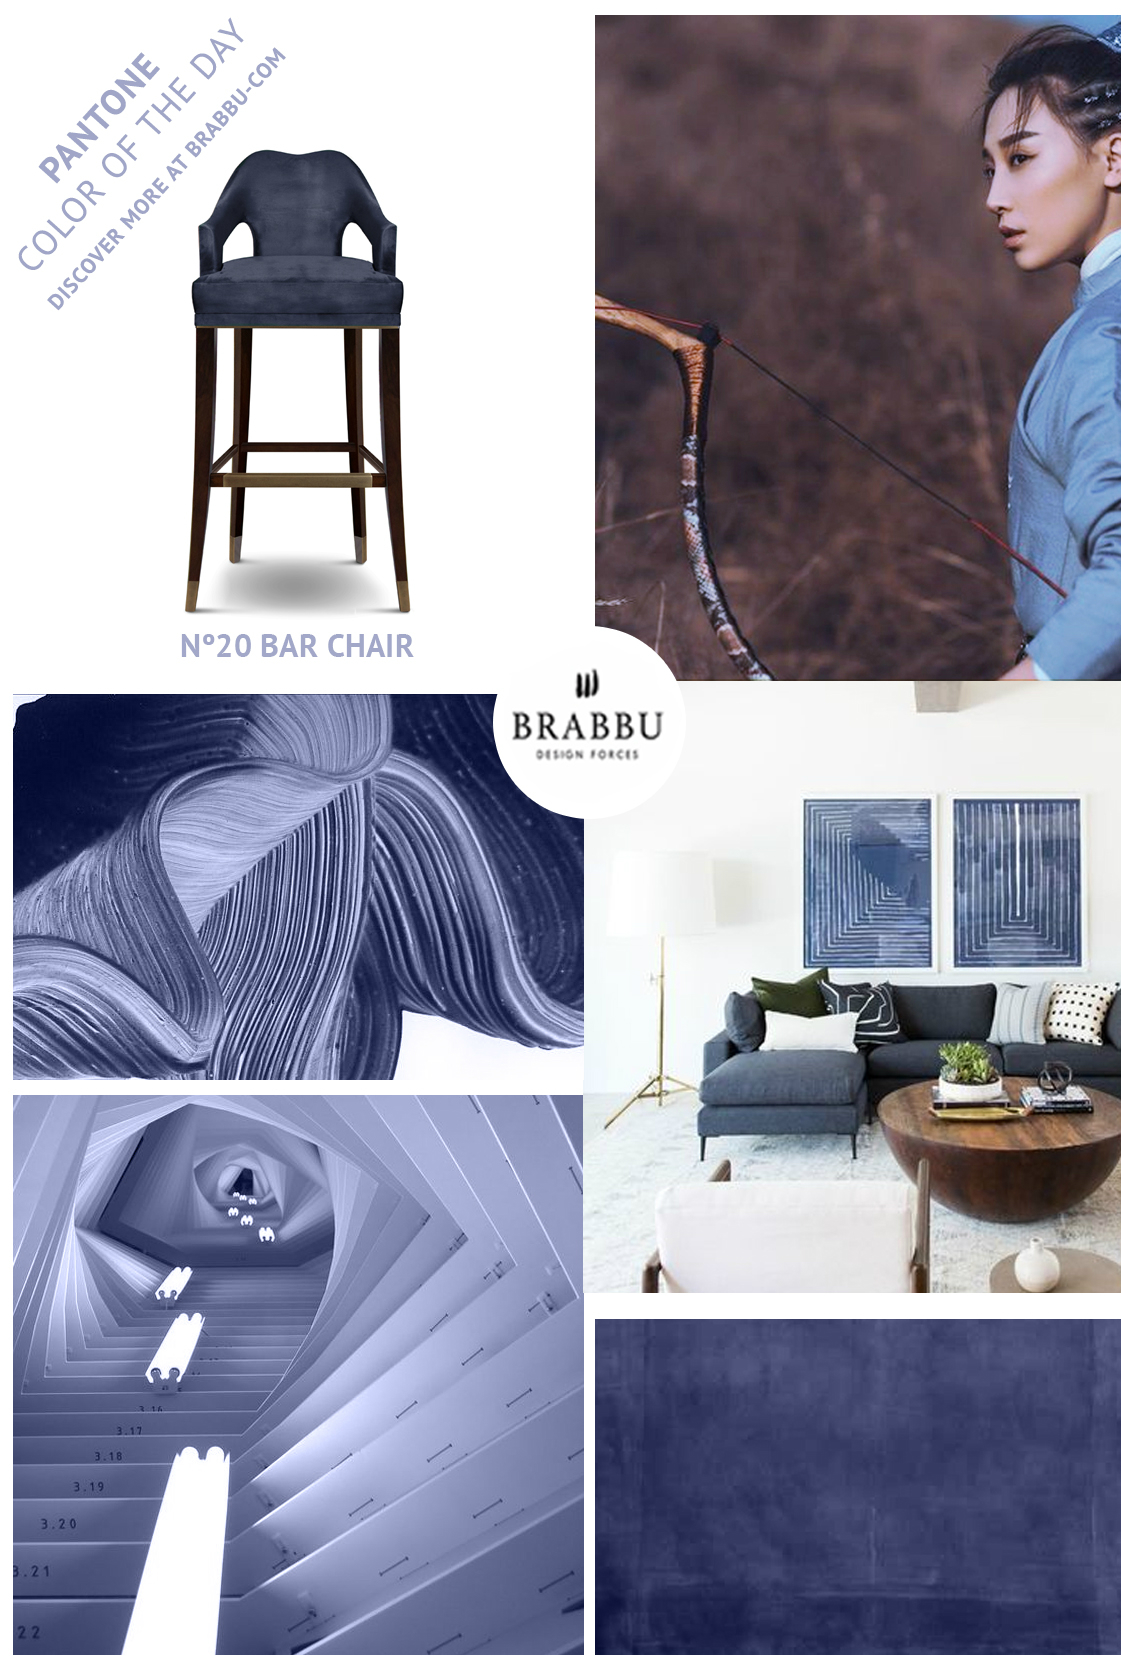 Interior design tips with pantone color of the day!